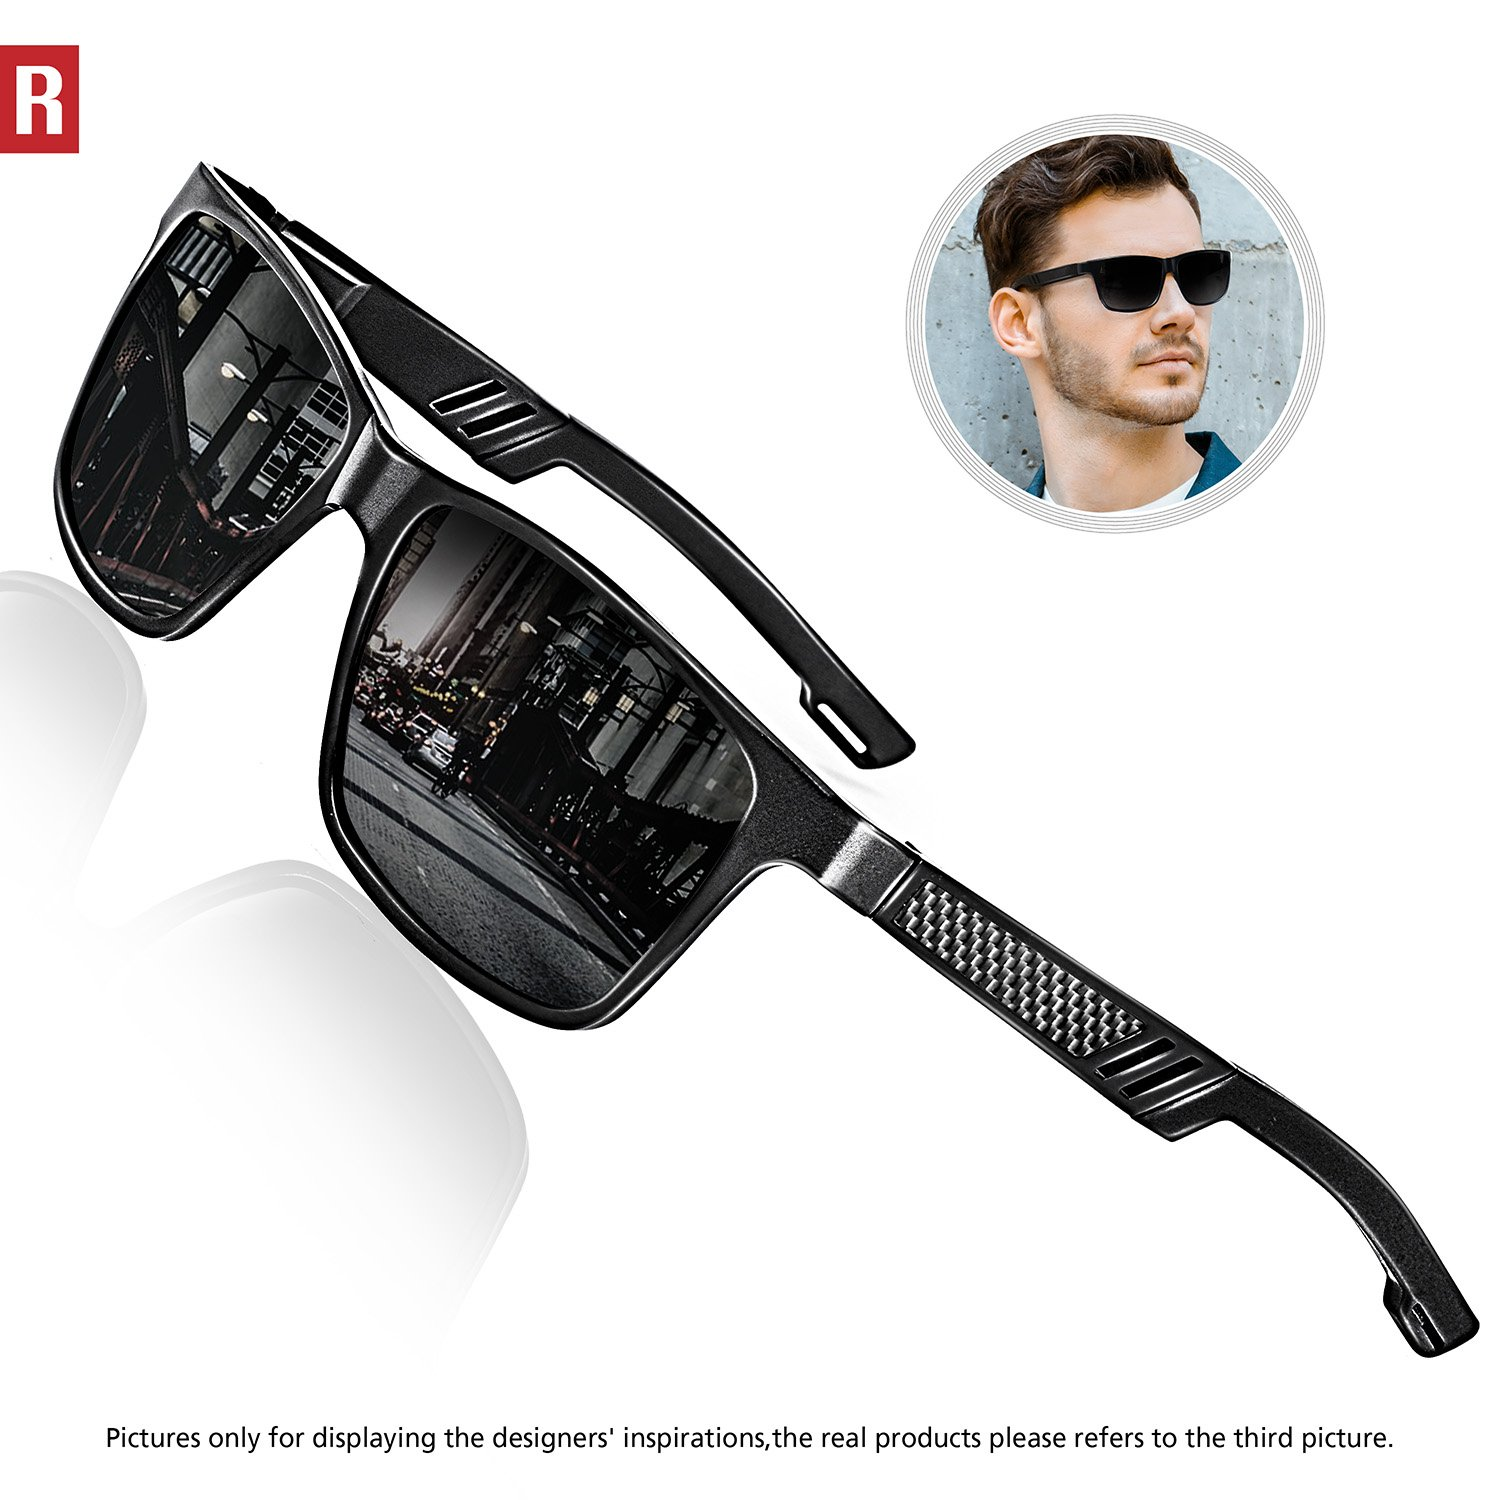 ROCKNIGHT Polarized UV Protection Driving Sunglasses for Men Wayfarer Metal Frame Al-Mg Lightweight Outdoors Sunglasses A6560